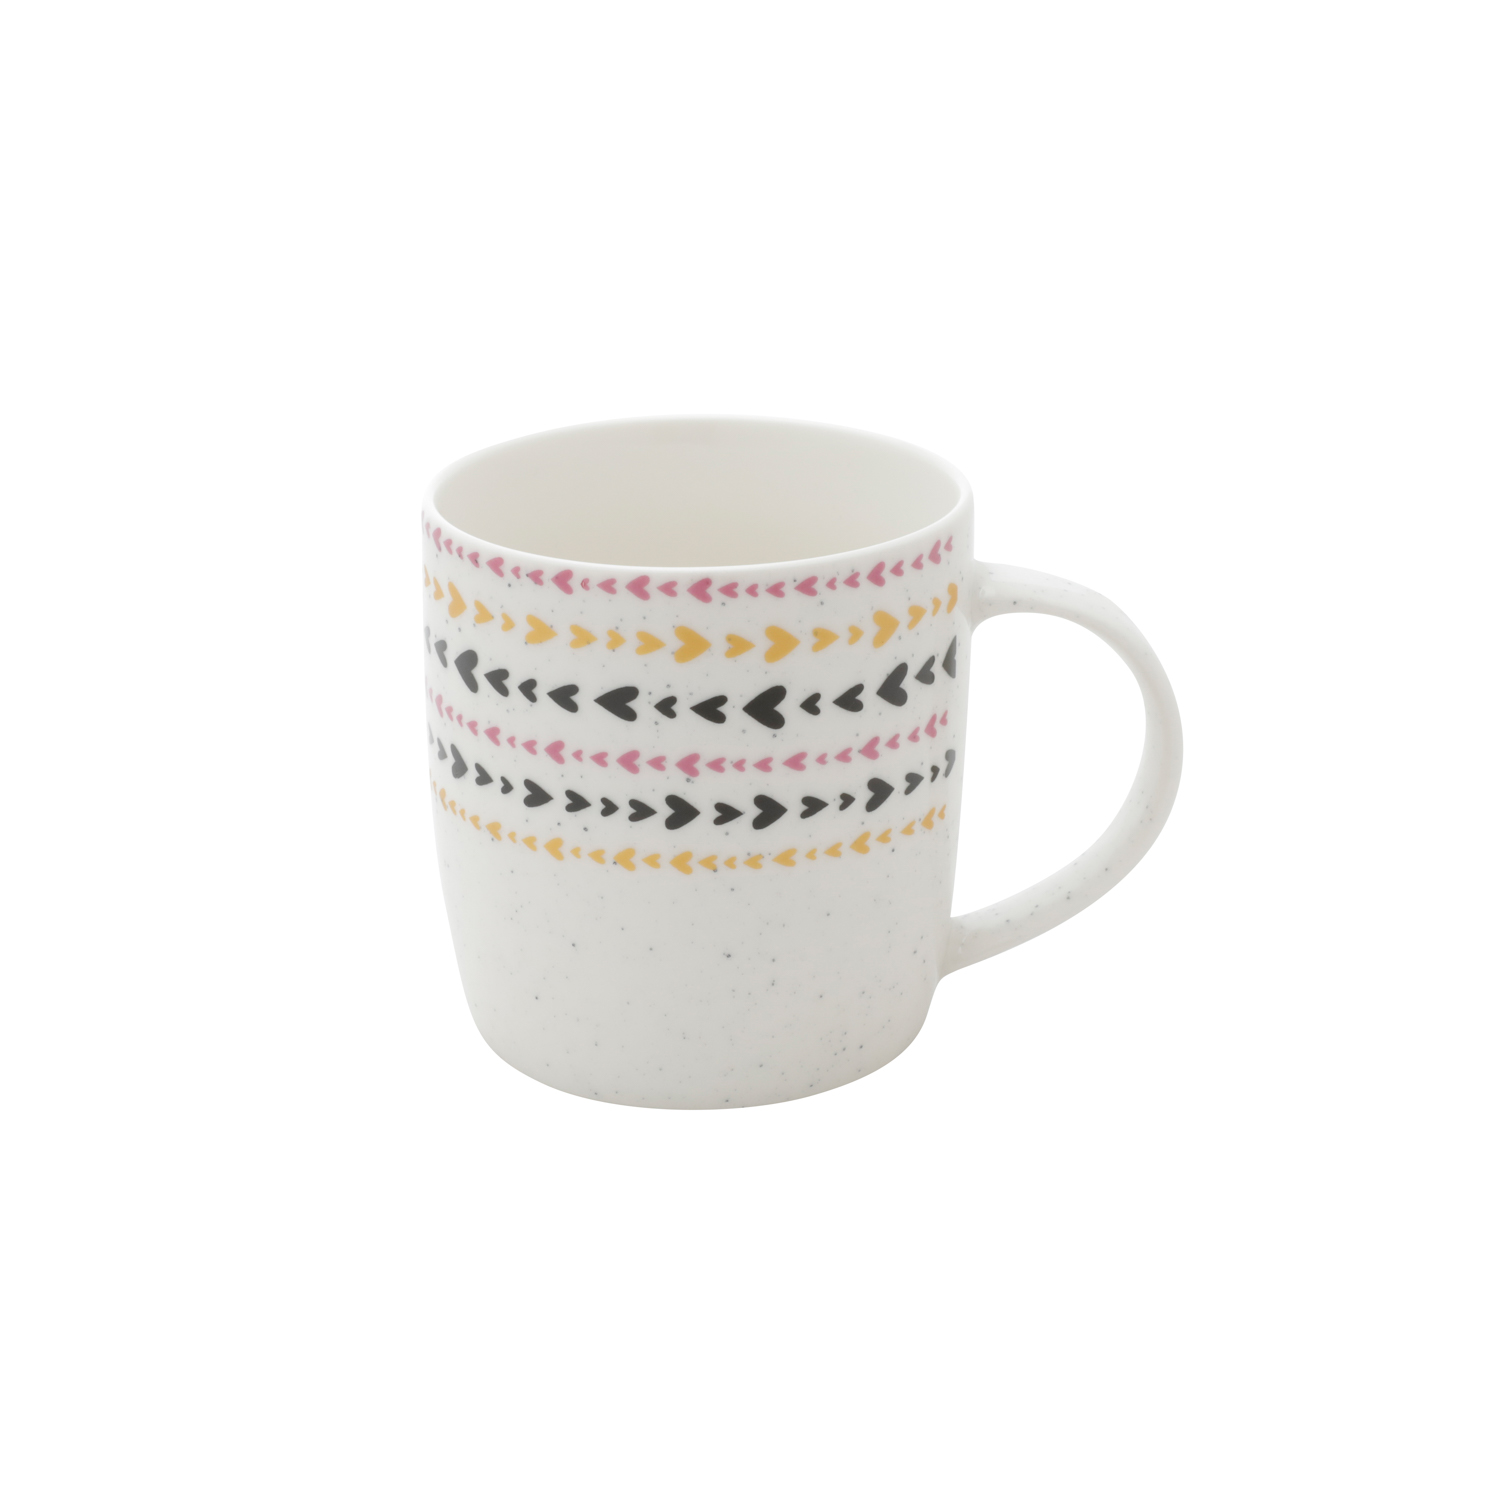 CANECA PORCELANA GOOD MORNING HEART BRANCO/PRETO 8,5X7,3X9,3 cm - 400ml